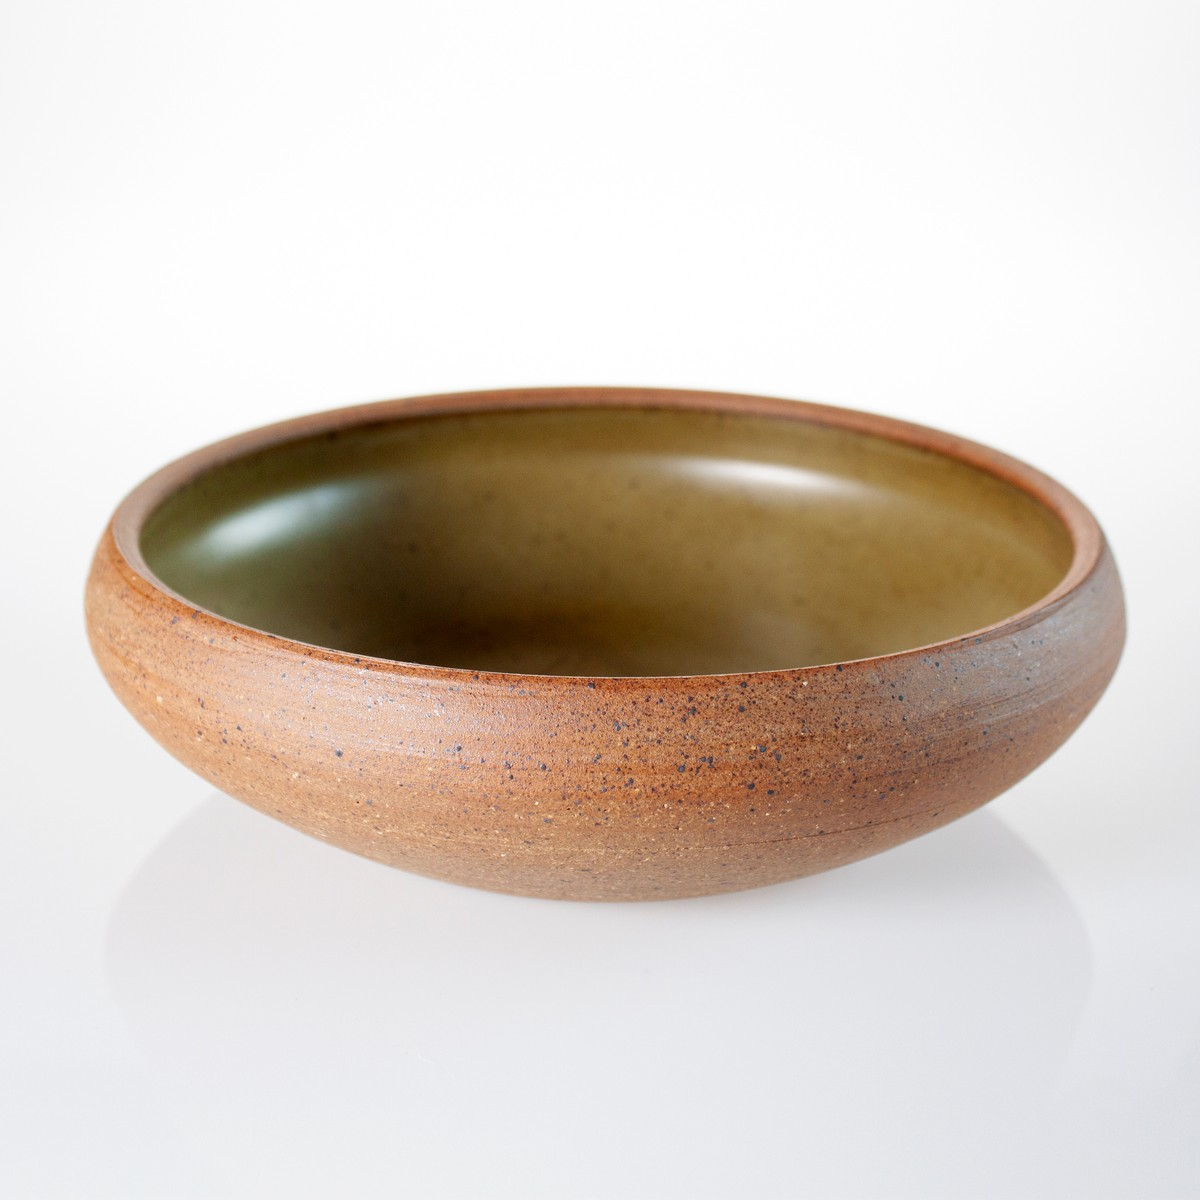 Photo of Olive Green Serving Bowl